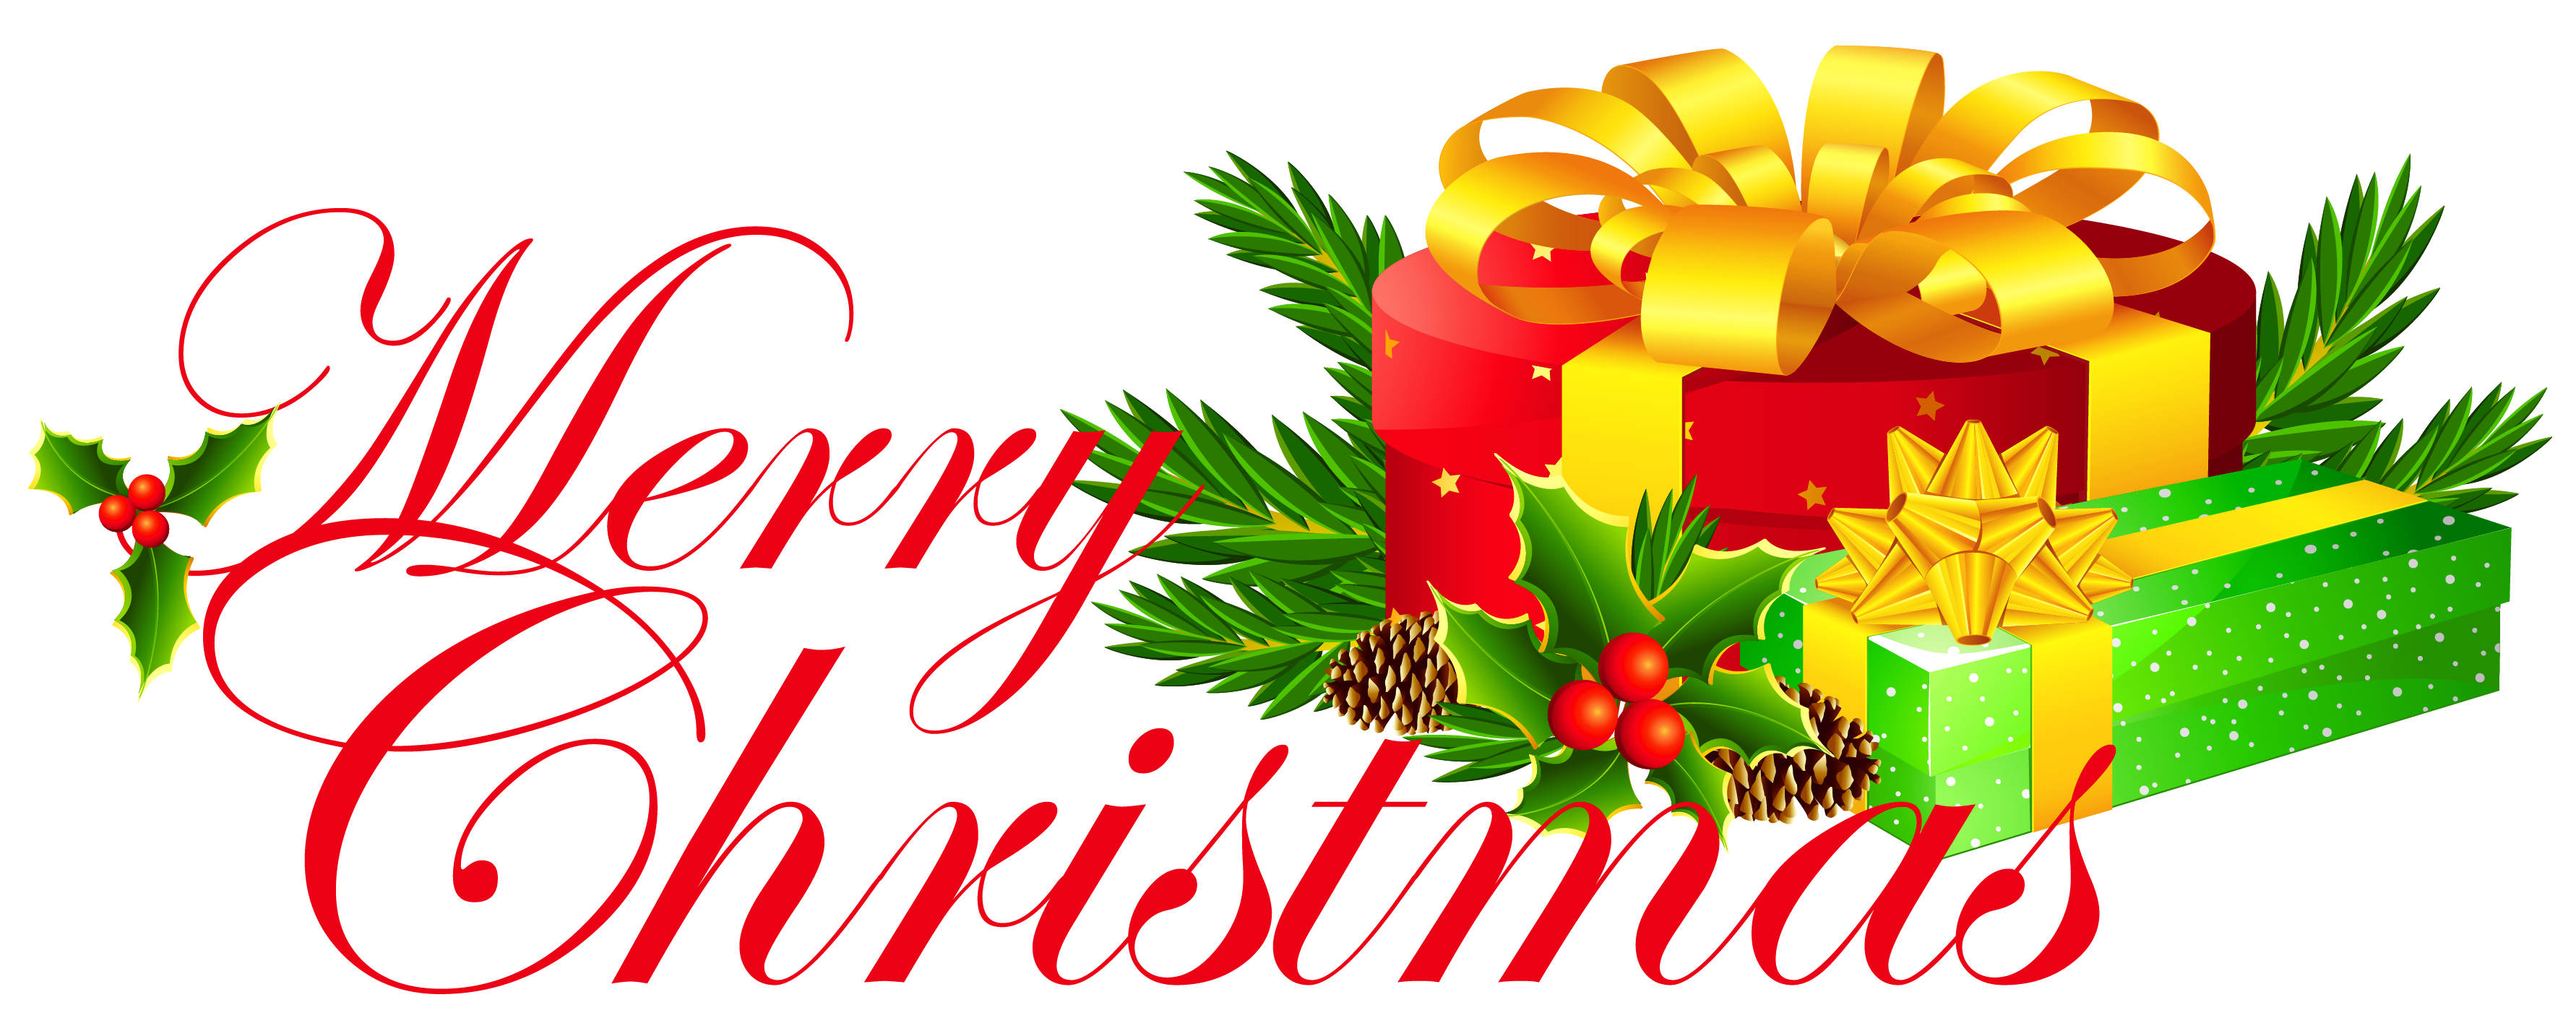 3565x1427 Merry Christmas Clip Art Pictures Hd New Template Images Image